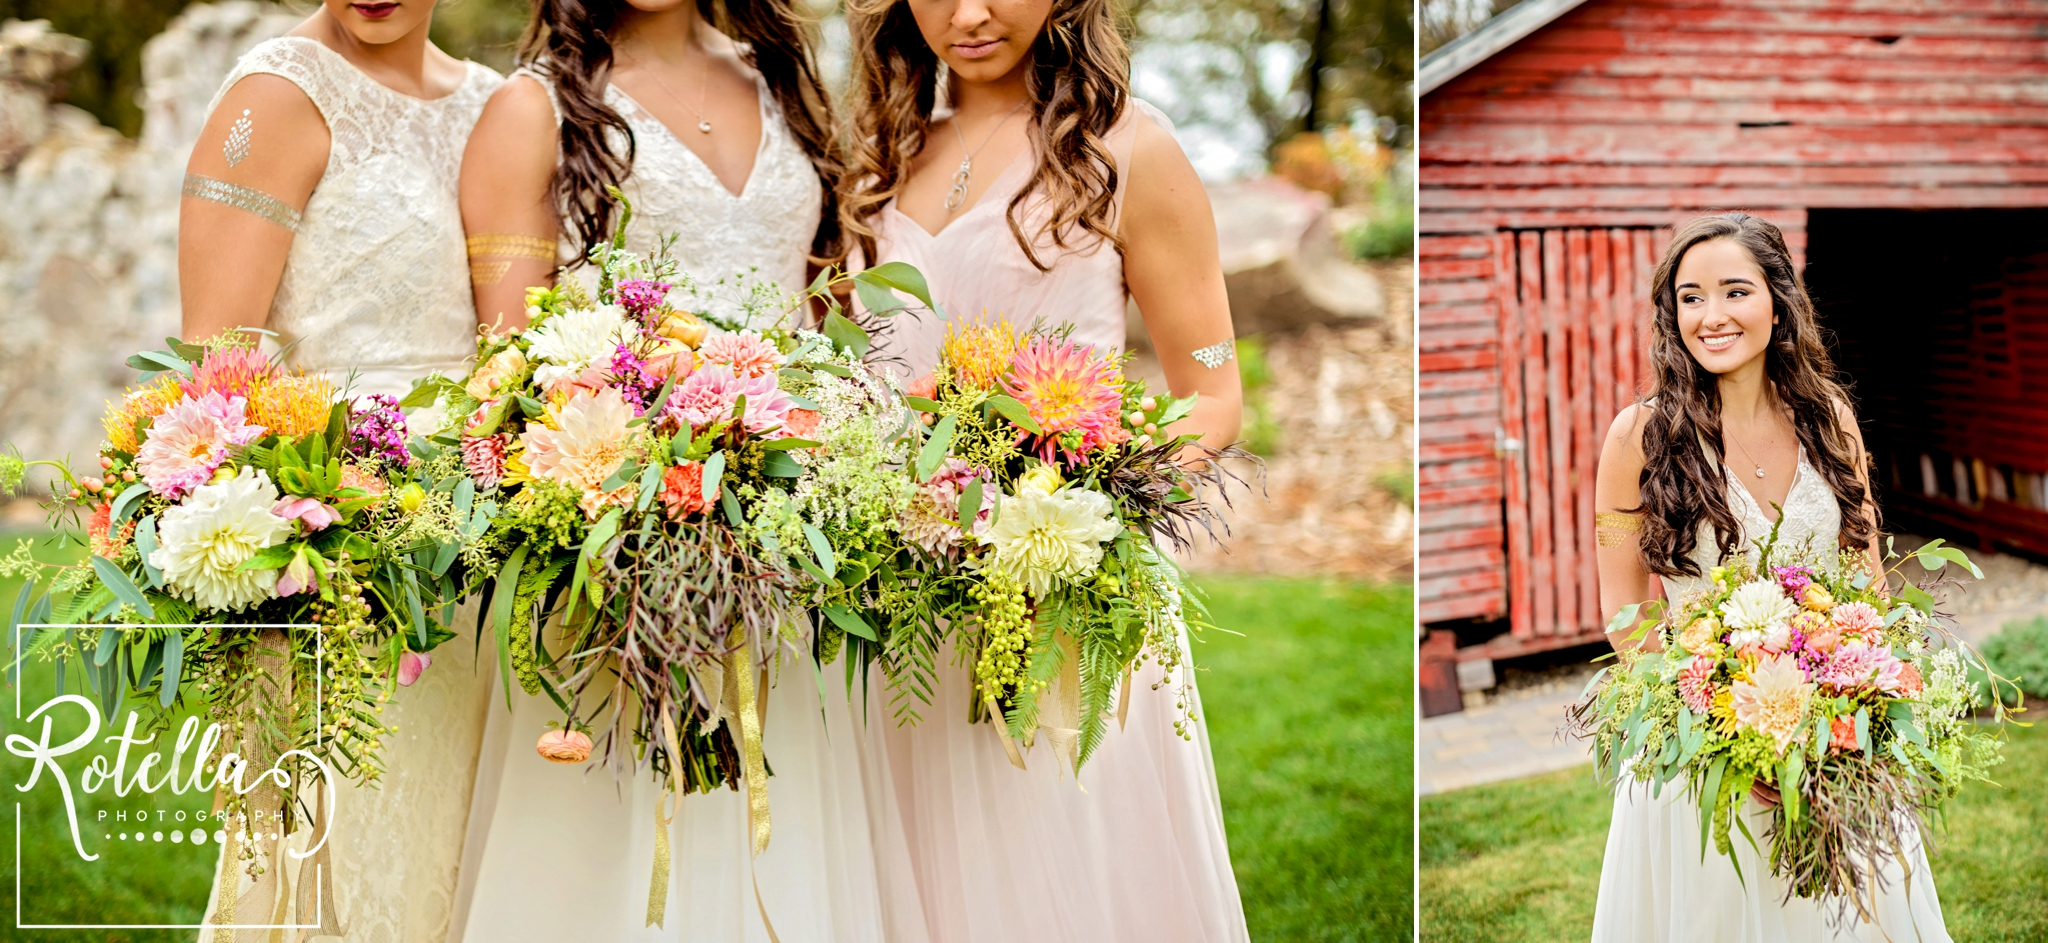 Bride and bridesmaids in front of barn